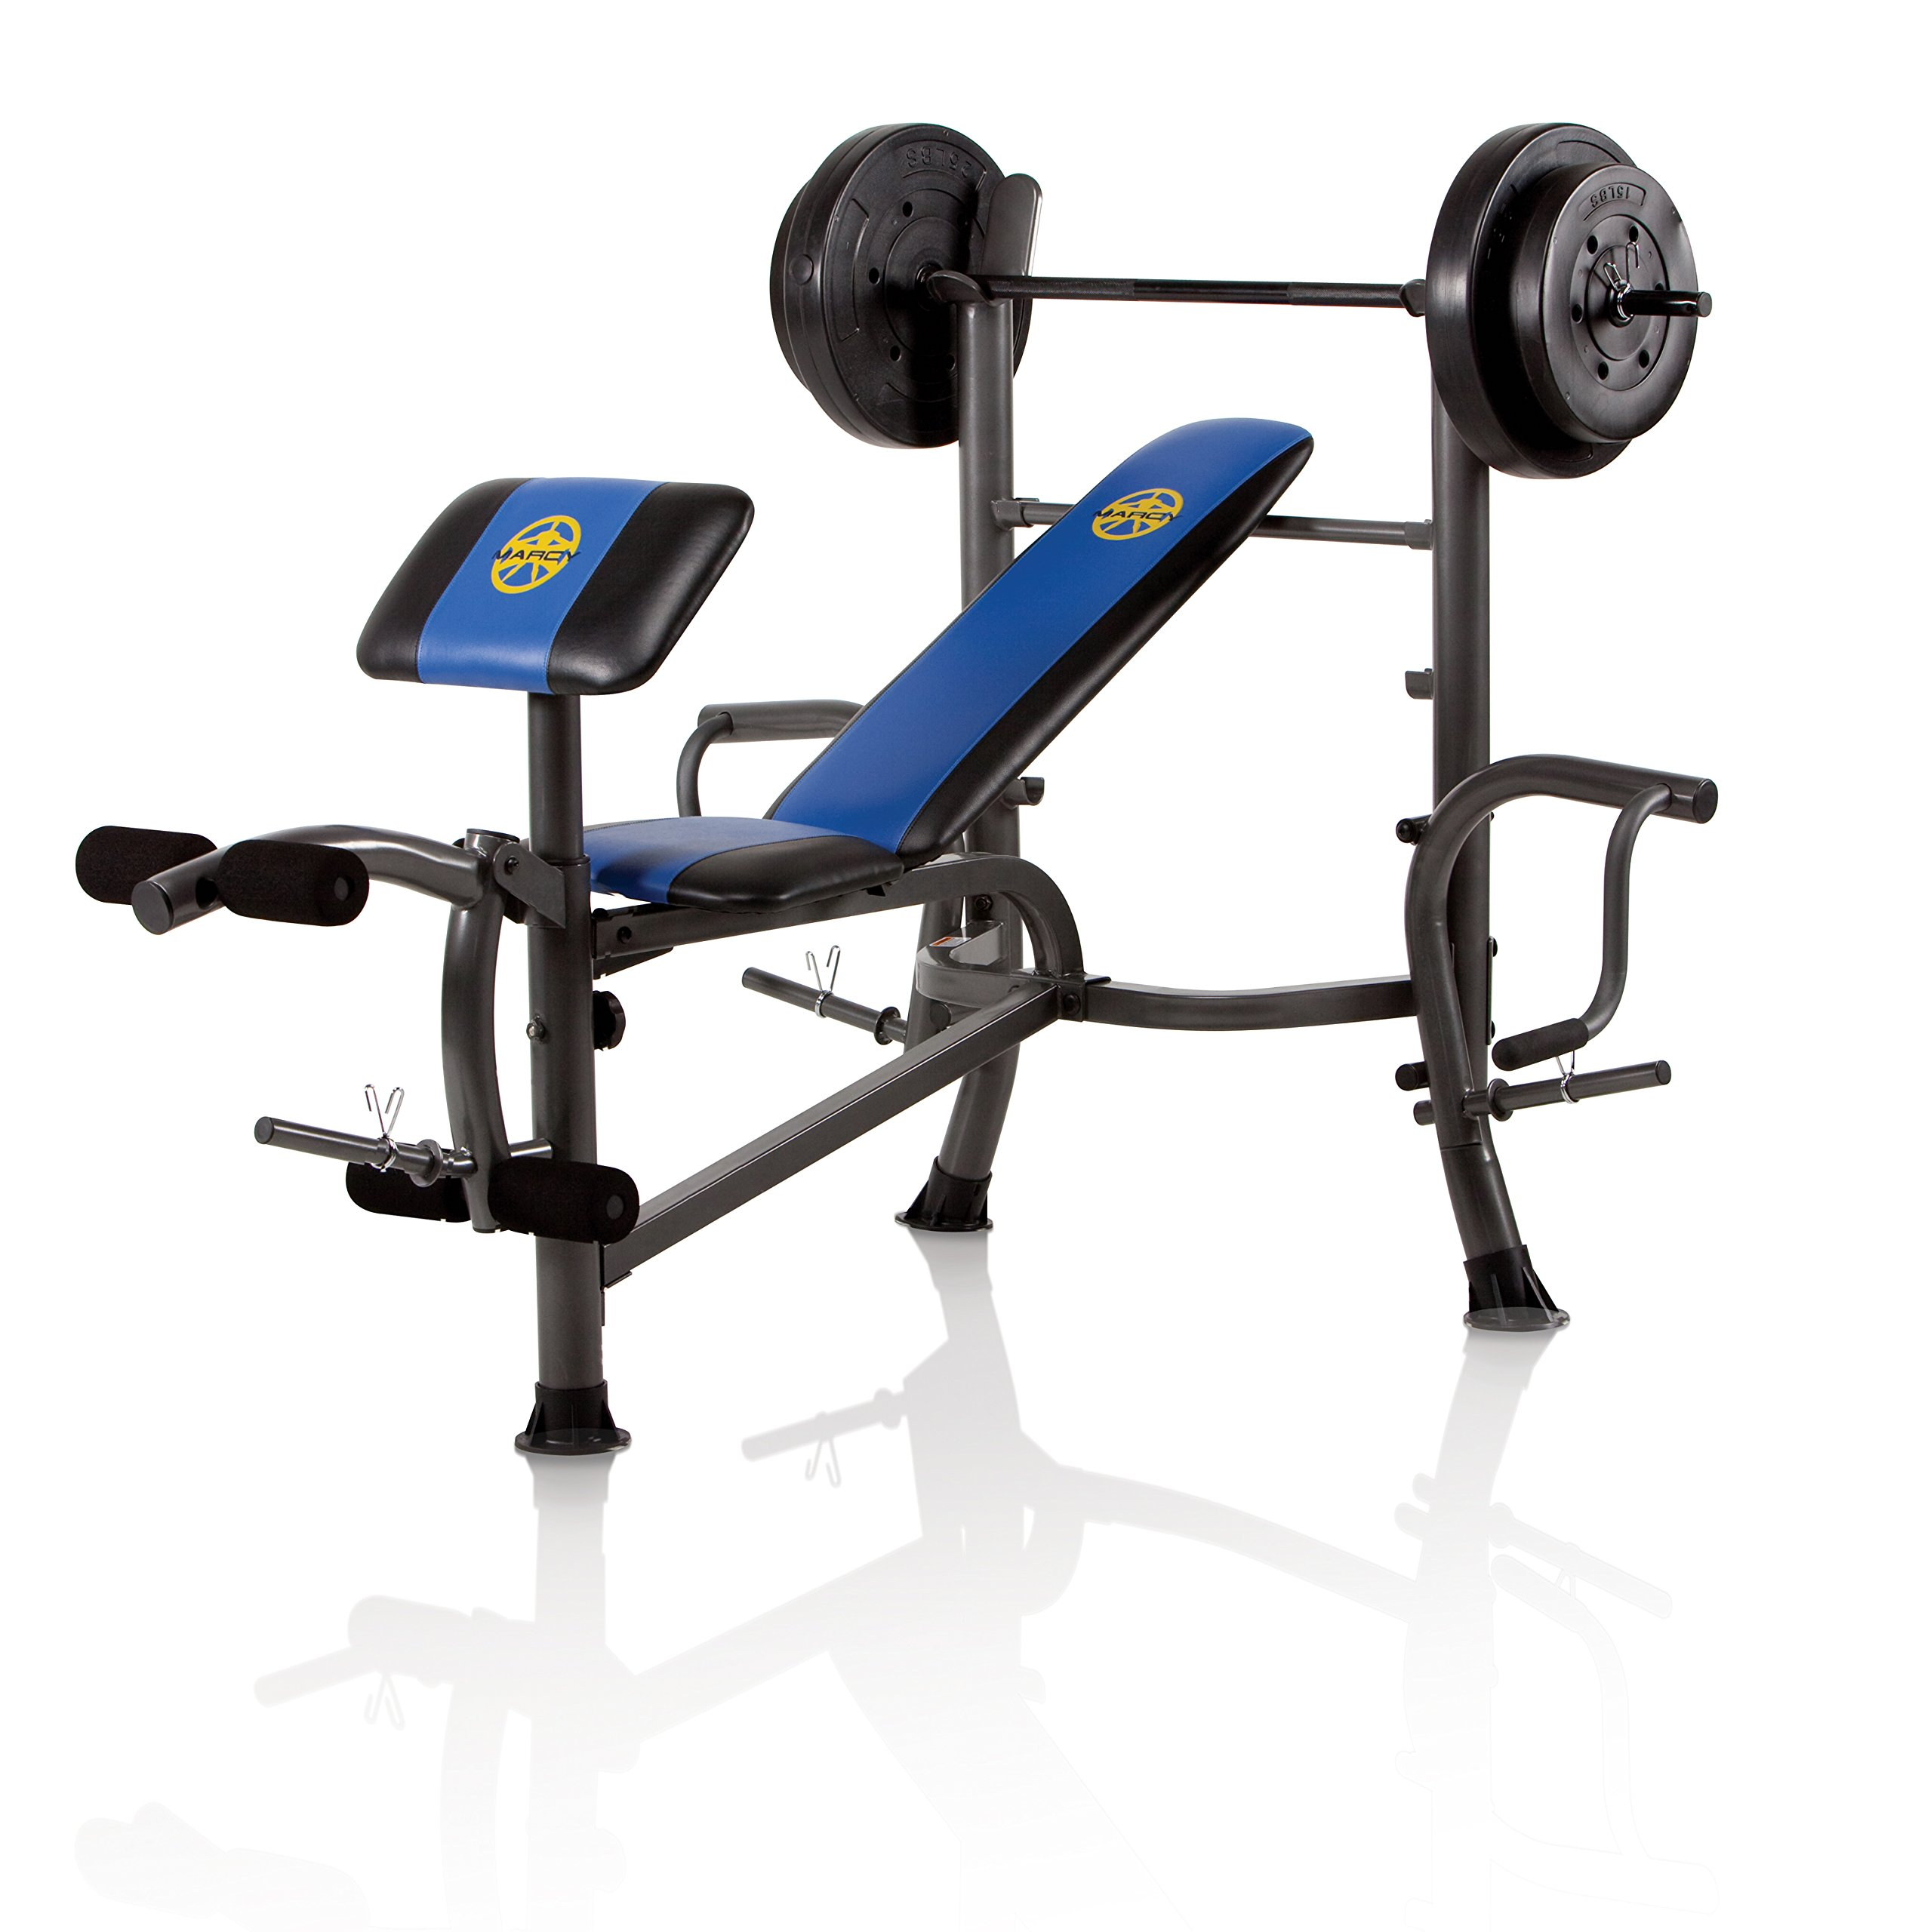 Marcy OPP Bench and 80-Pound Weight Set